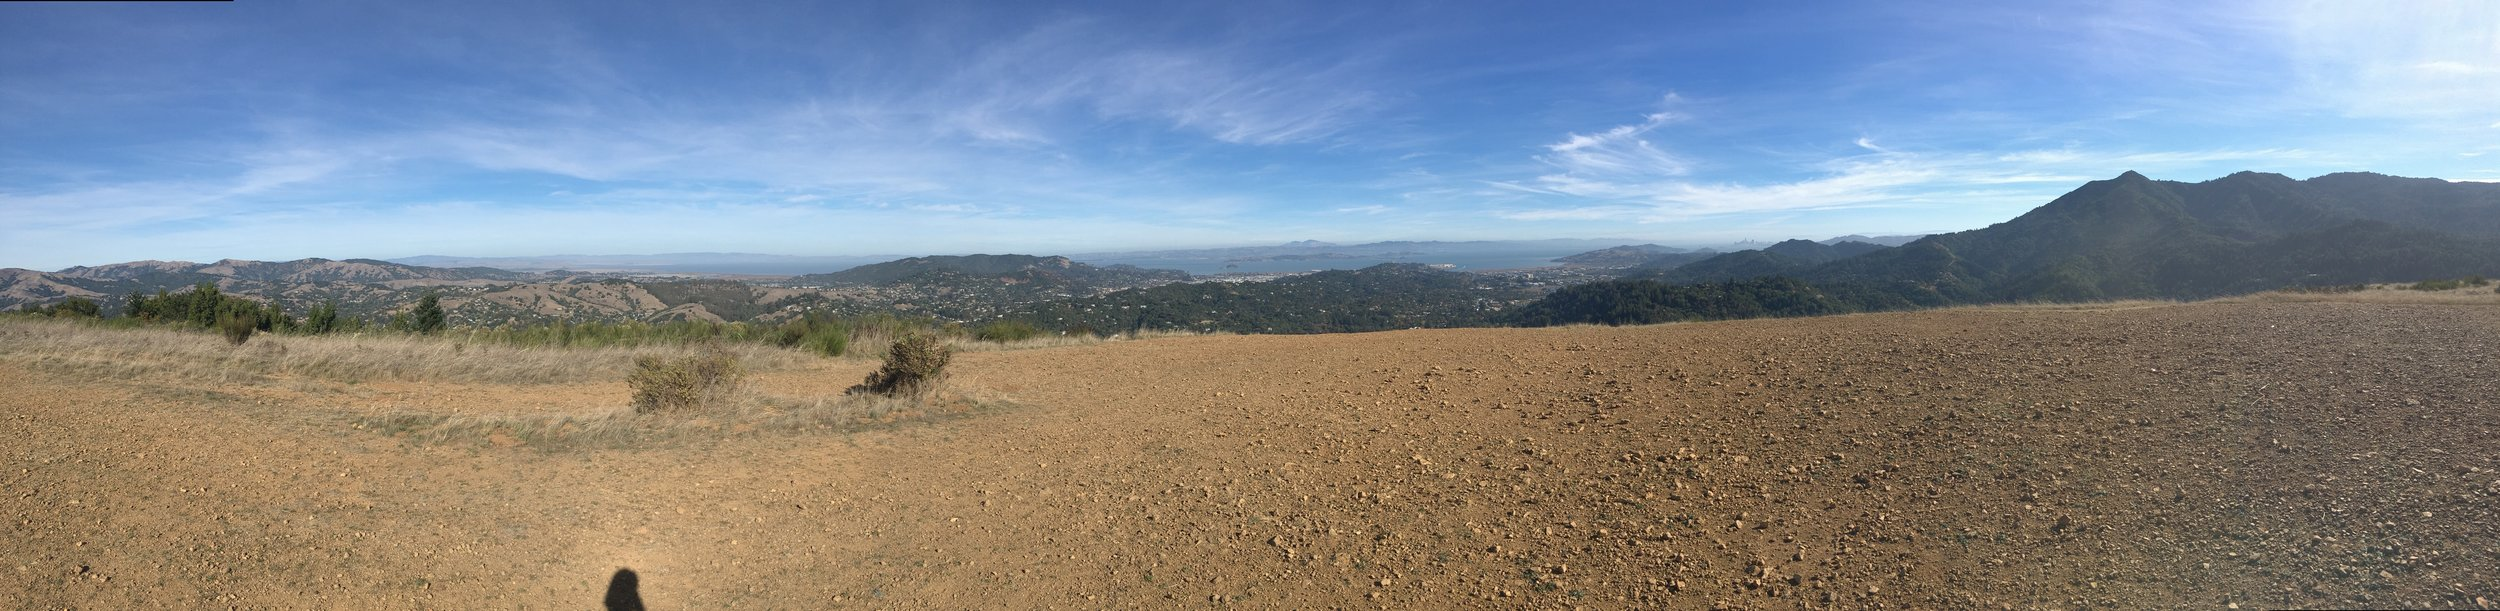 The top of Bald Hill overlooking Mount Tamalpais, where Eric Ryan and Ricky Chilcott decided that they would partner on Mission Met.